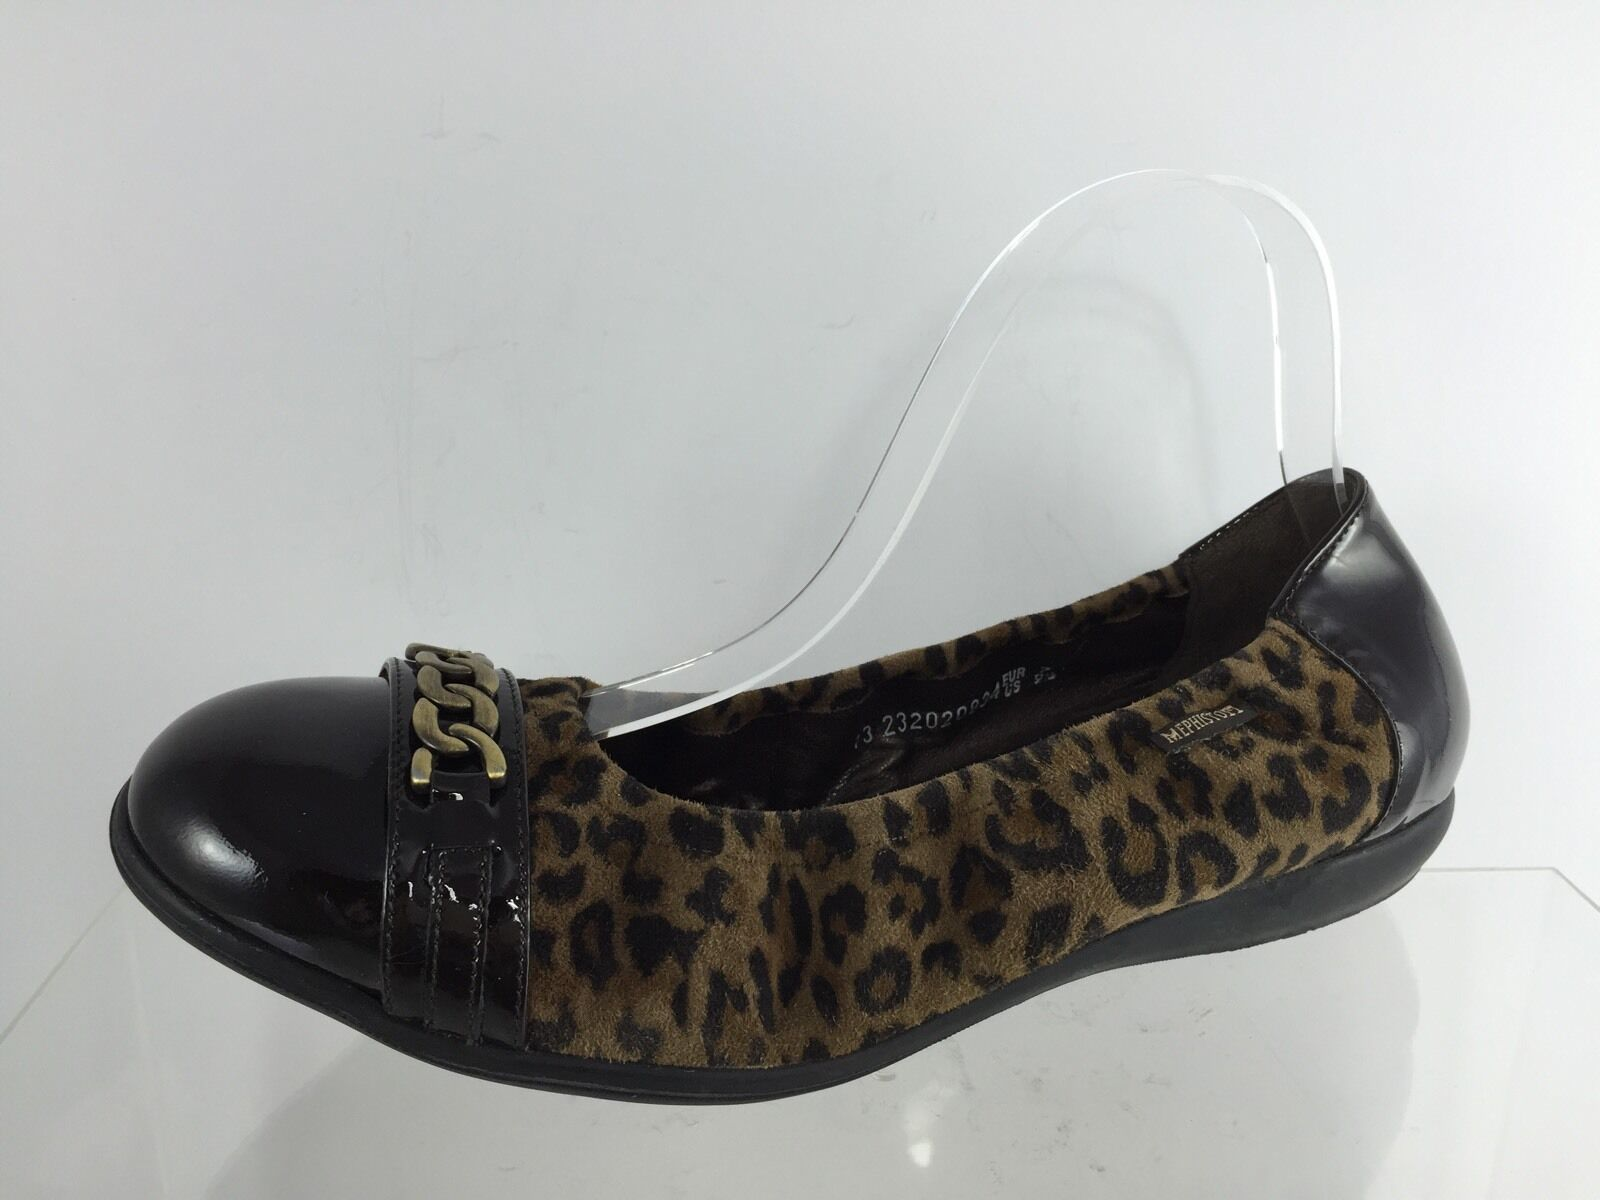 vendita calda Mephisto Mephisto Mephisto donna Cheetah Textured Leather Flats 9.5  vendita scontata